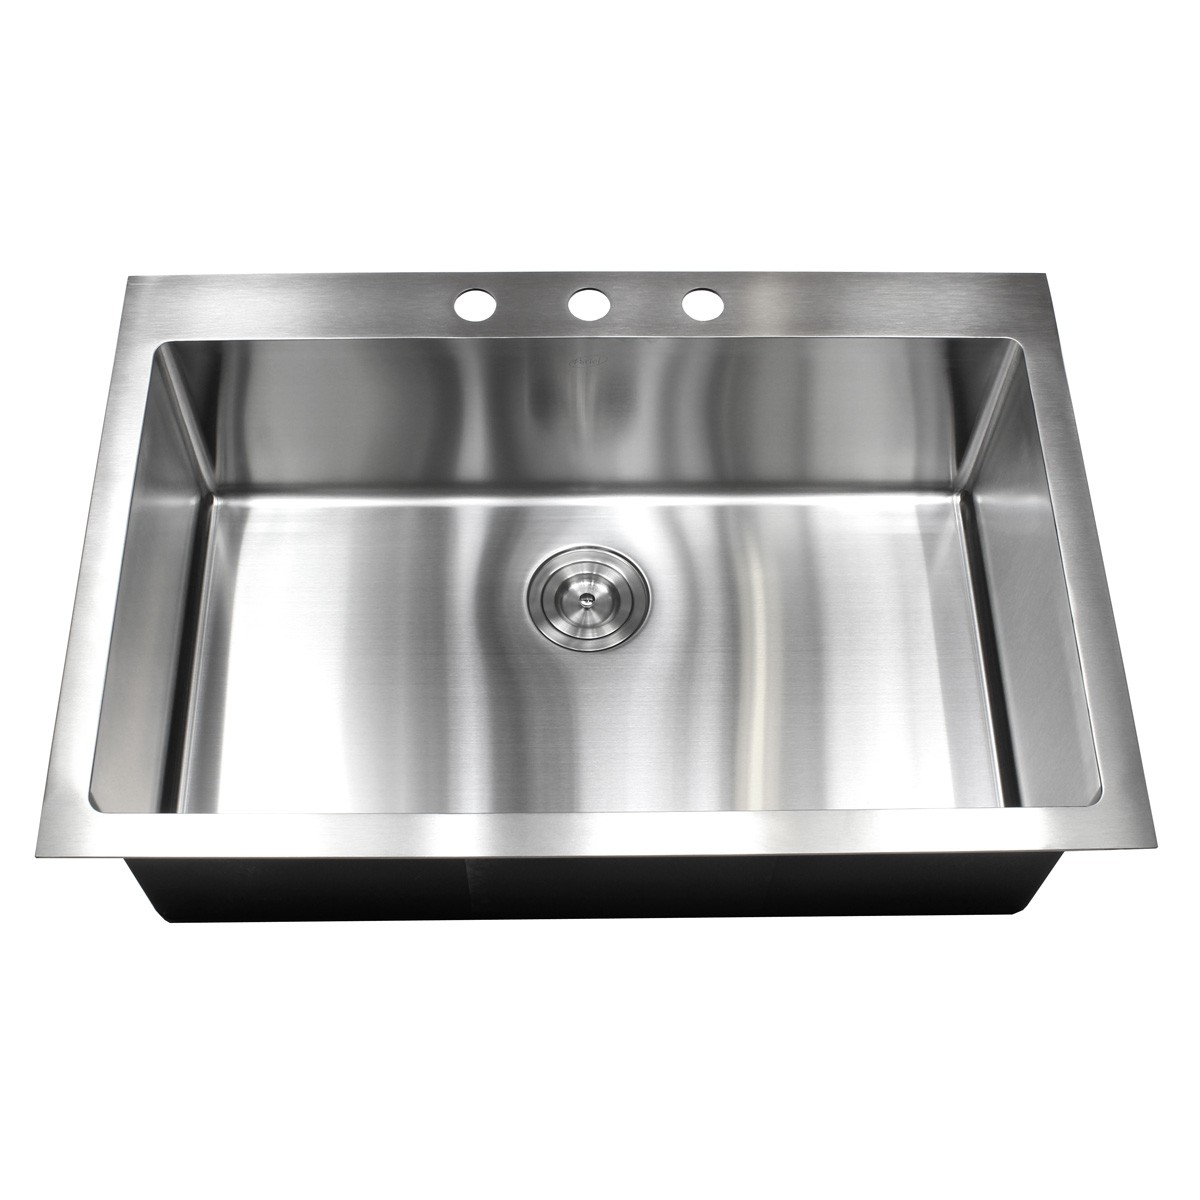 Best Kitchen Sink: 33 Inch Top-Mount / Drop-In Stainless Steel Single Bowl